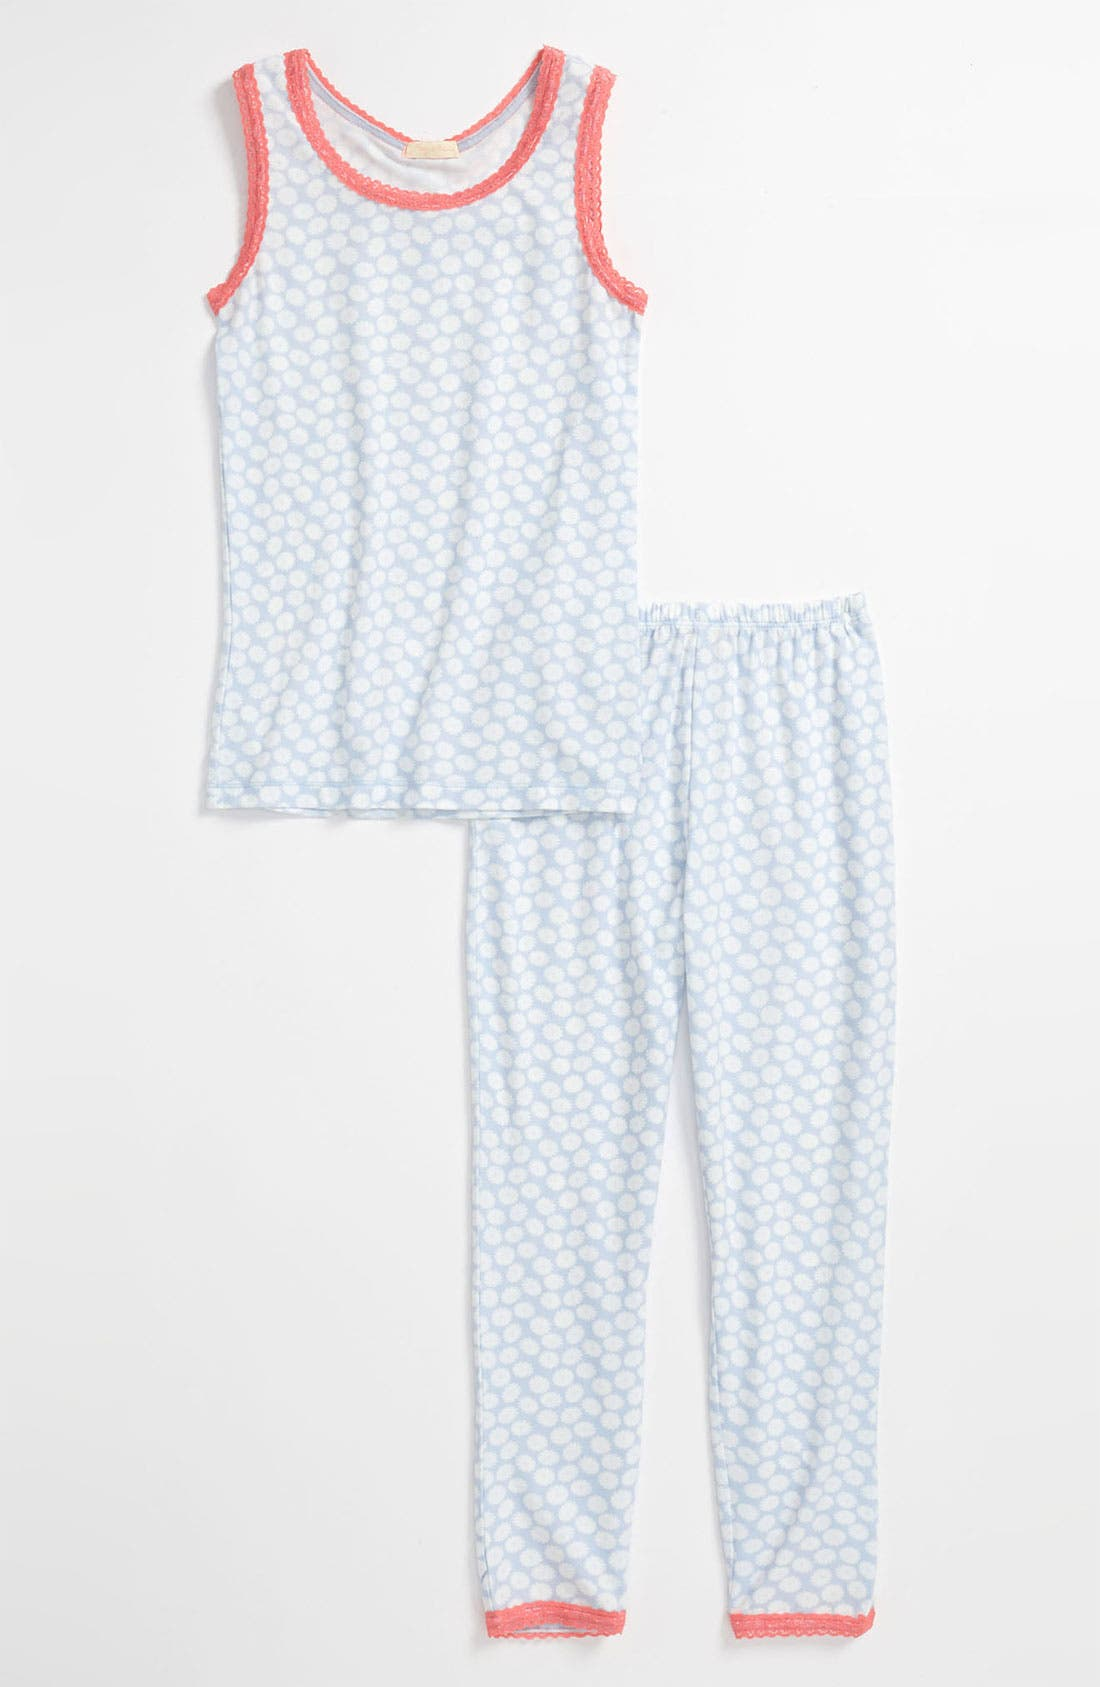 Main Image - Ruby & Bloom Fitted Two-Piece Pajamas (Toddler Girls, Little Girls & Big Girls)